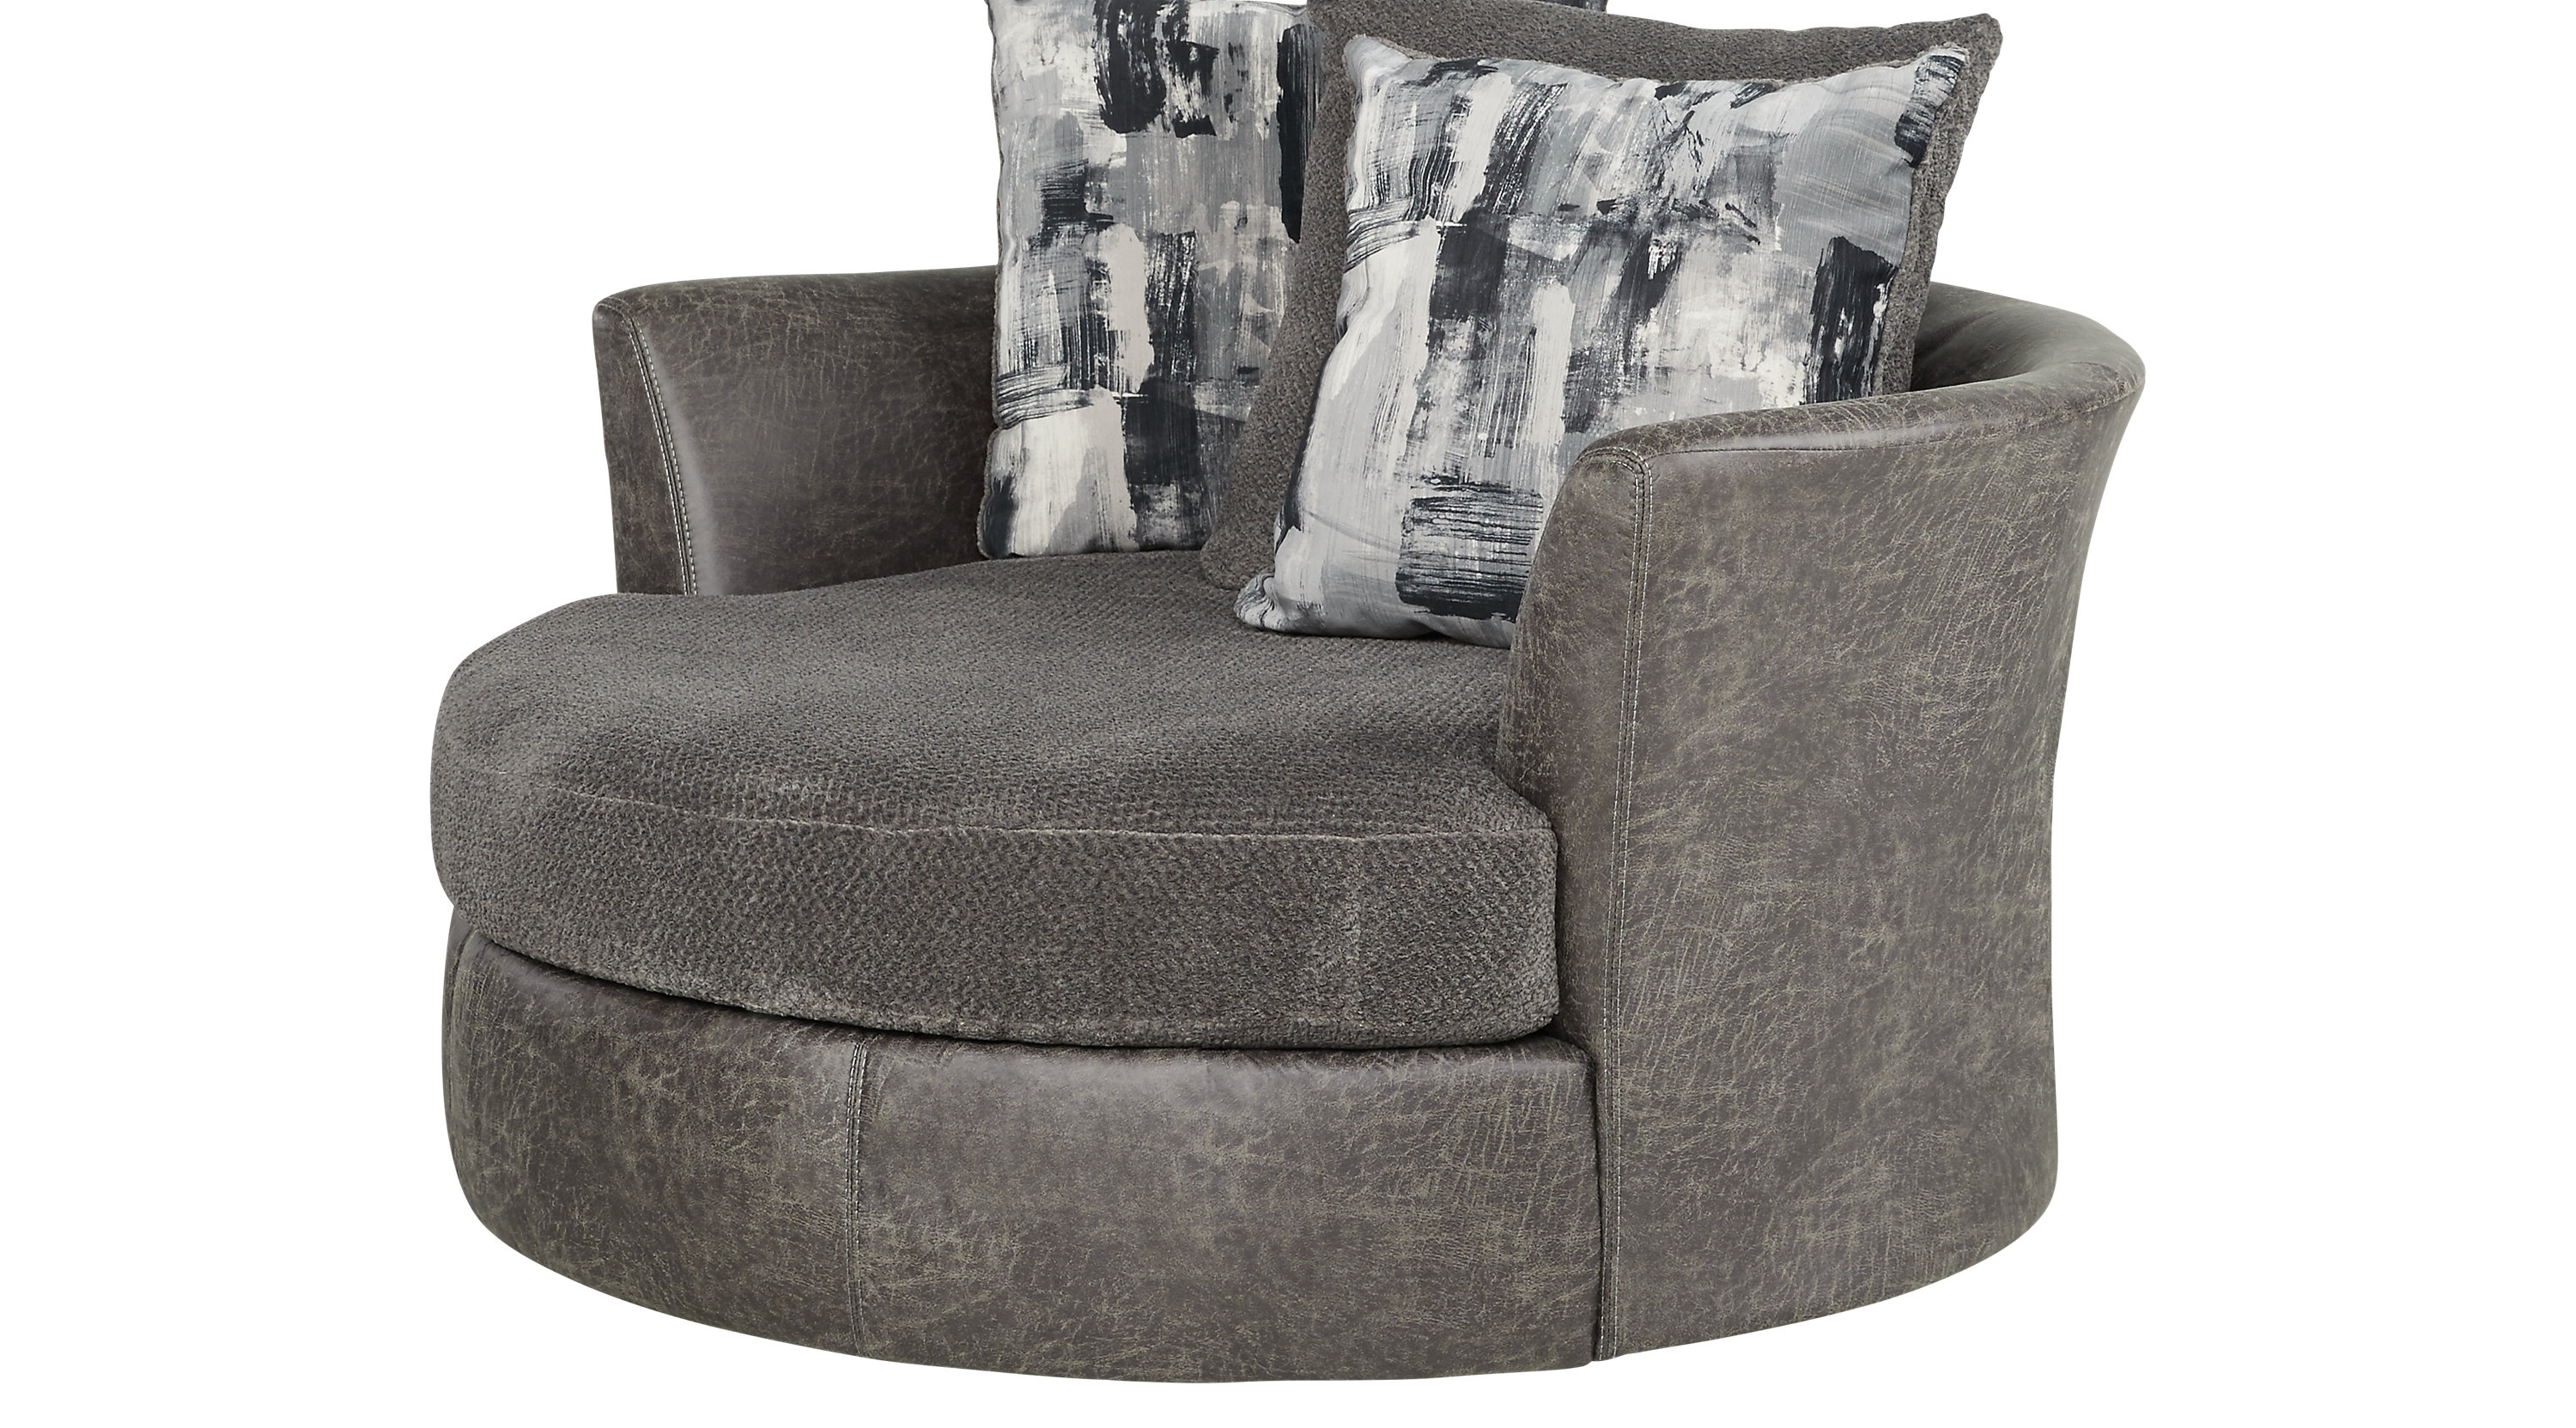 Widely Used Swivel Sofa Chairs Regarding Round Sofa Chair, Round Couch Chair (View 20 of 20)